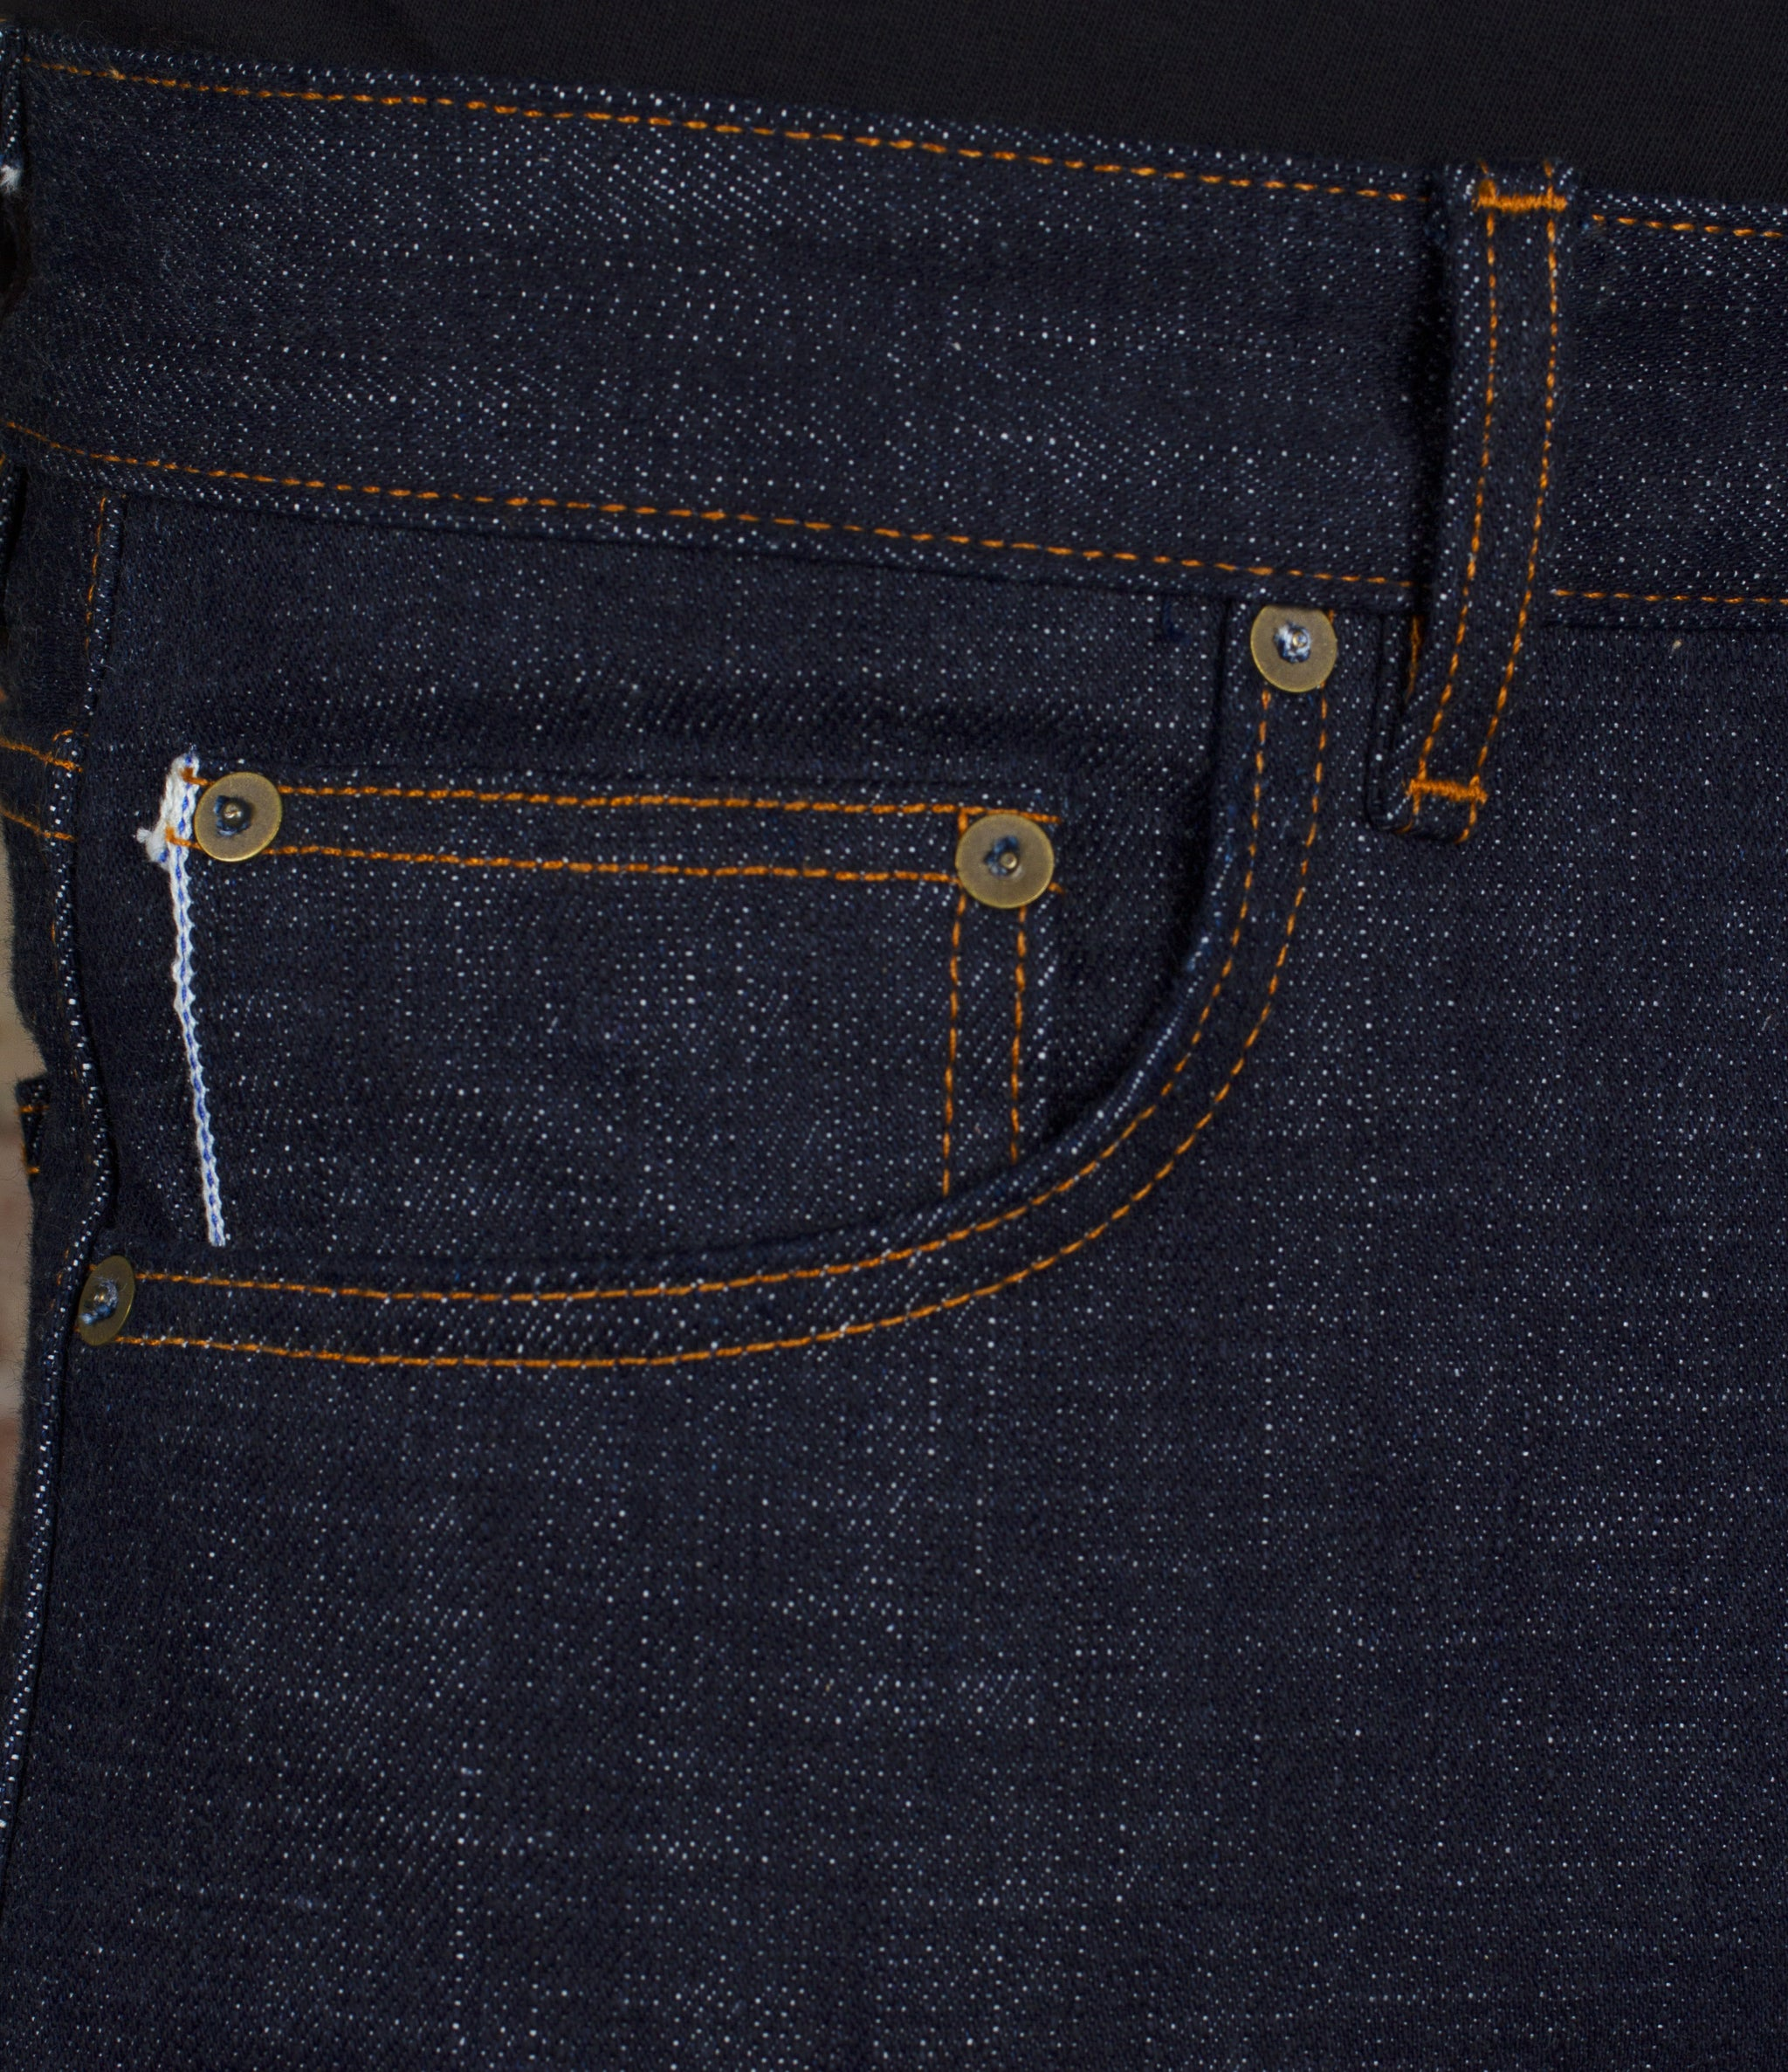 The Slim Straight 19oz 'Hatch Attack' Japan Selvage